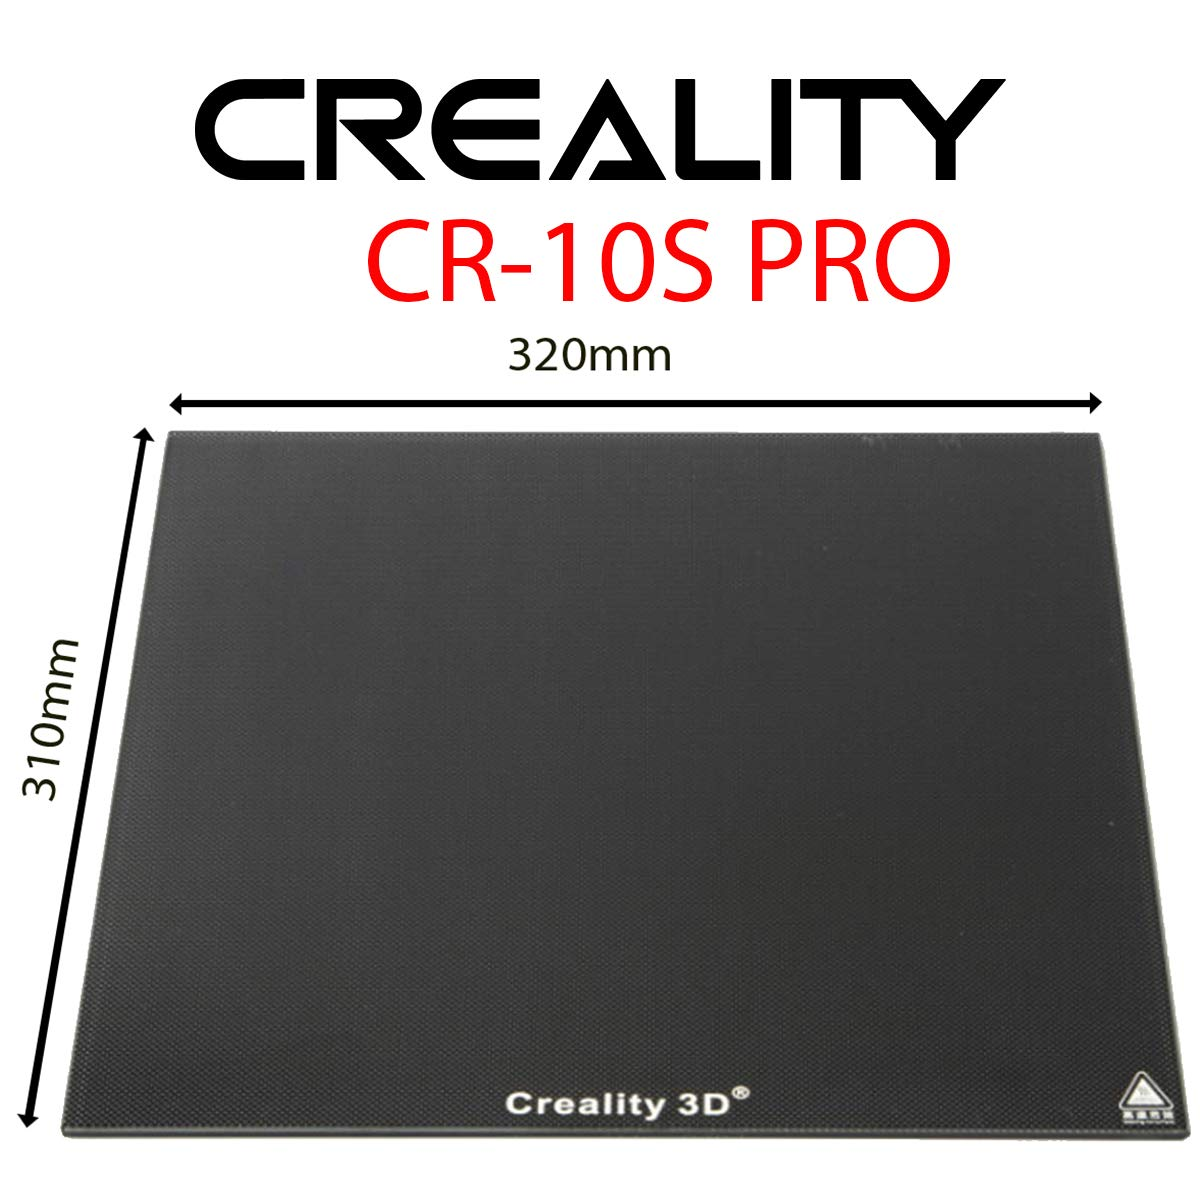 Tenlog Upgraded 3D Printer Borosilicate Glass Bed for Creality CR-10//CR-10S Pro//CR-10s Pro V2 Tenlog TL-D3 Pro,3D Printer Platform,3D Printer Glass Plate Build Surface 310x310x4mm